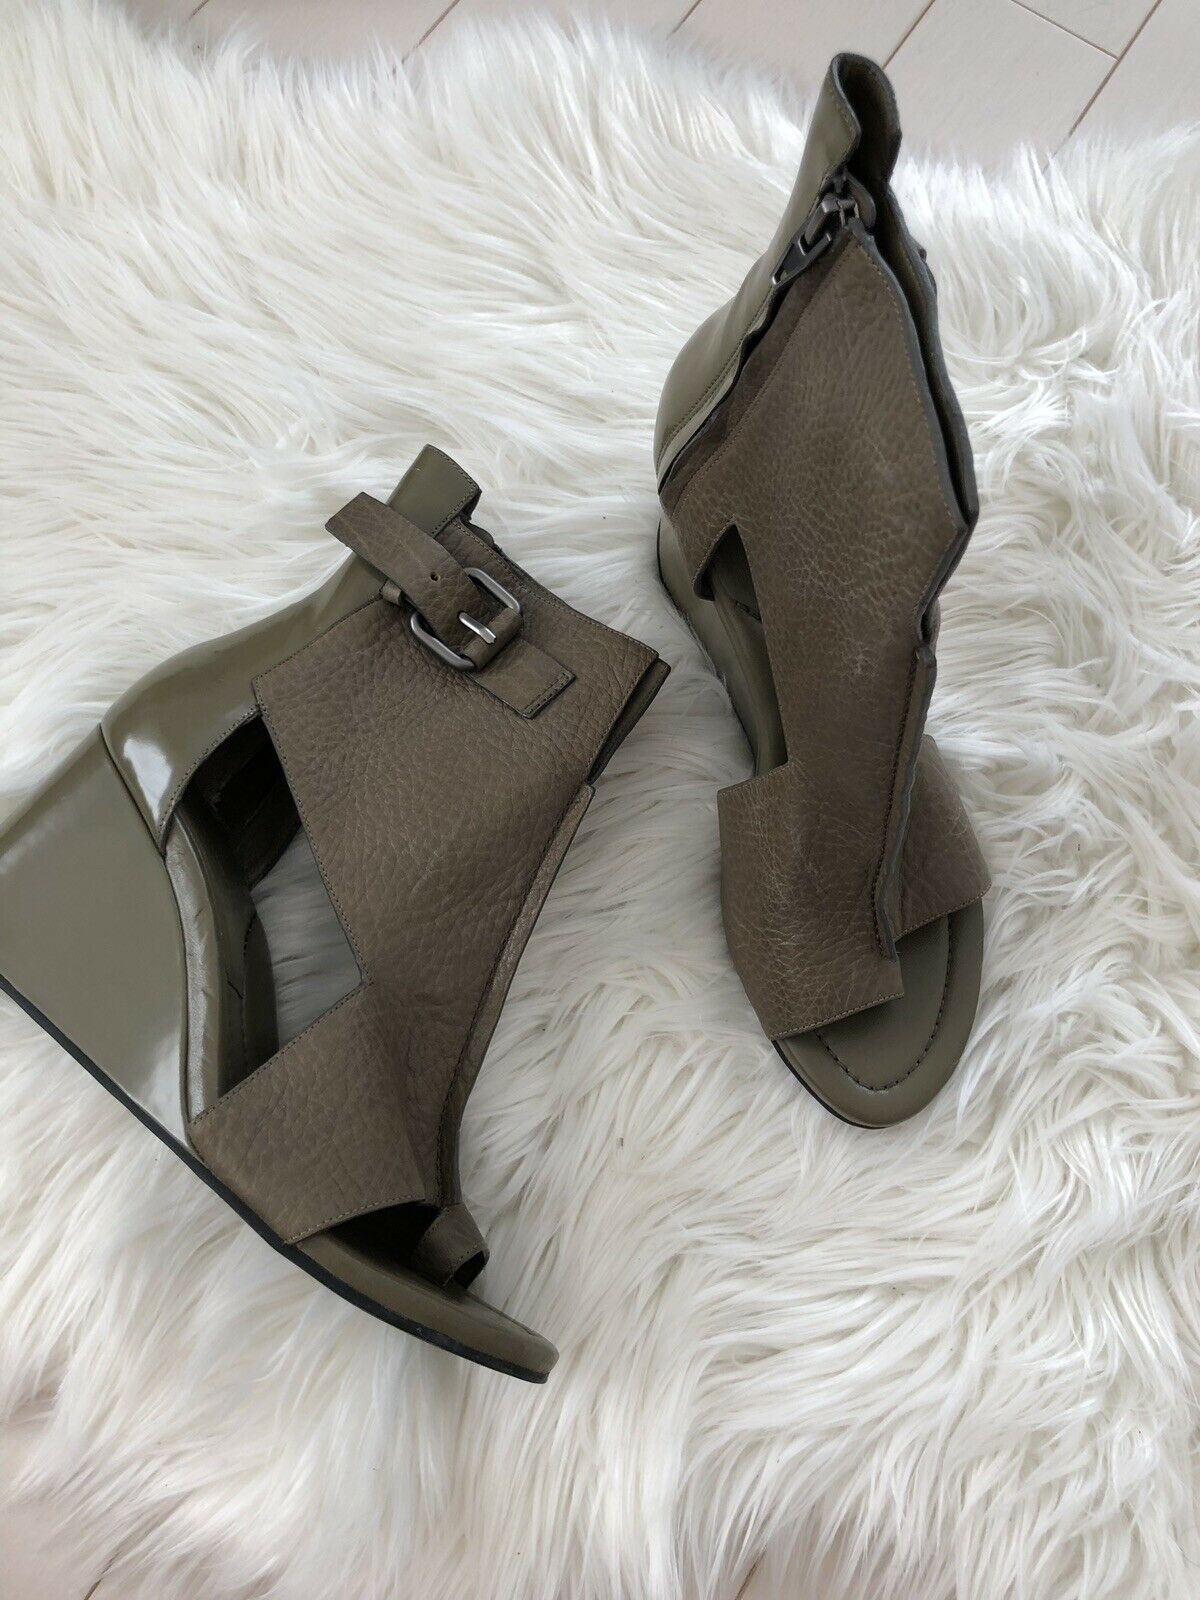 Alexander Wang Wedge Sandals Size 40 New